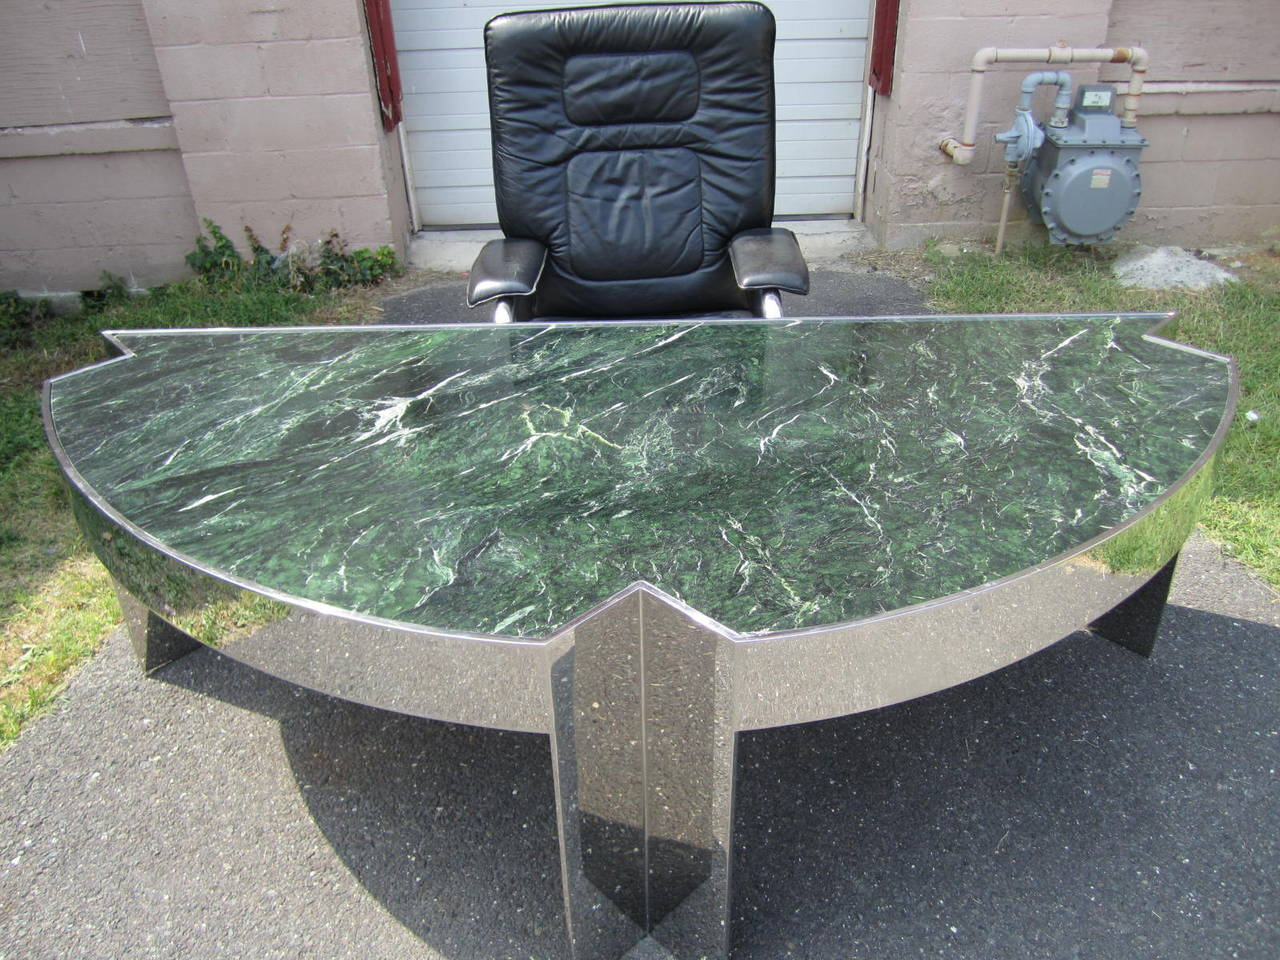 A vintage 1970s large 'Mezzaluna' desk designed by Leon Rosen for Pace Collection. Half-circle desk with a wide chromed steel frame and verde green marble-top. Magnificent in person this desk is sure to impress! We do have the matching rolling desk